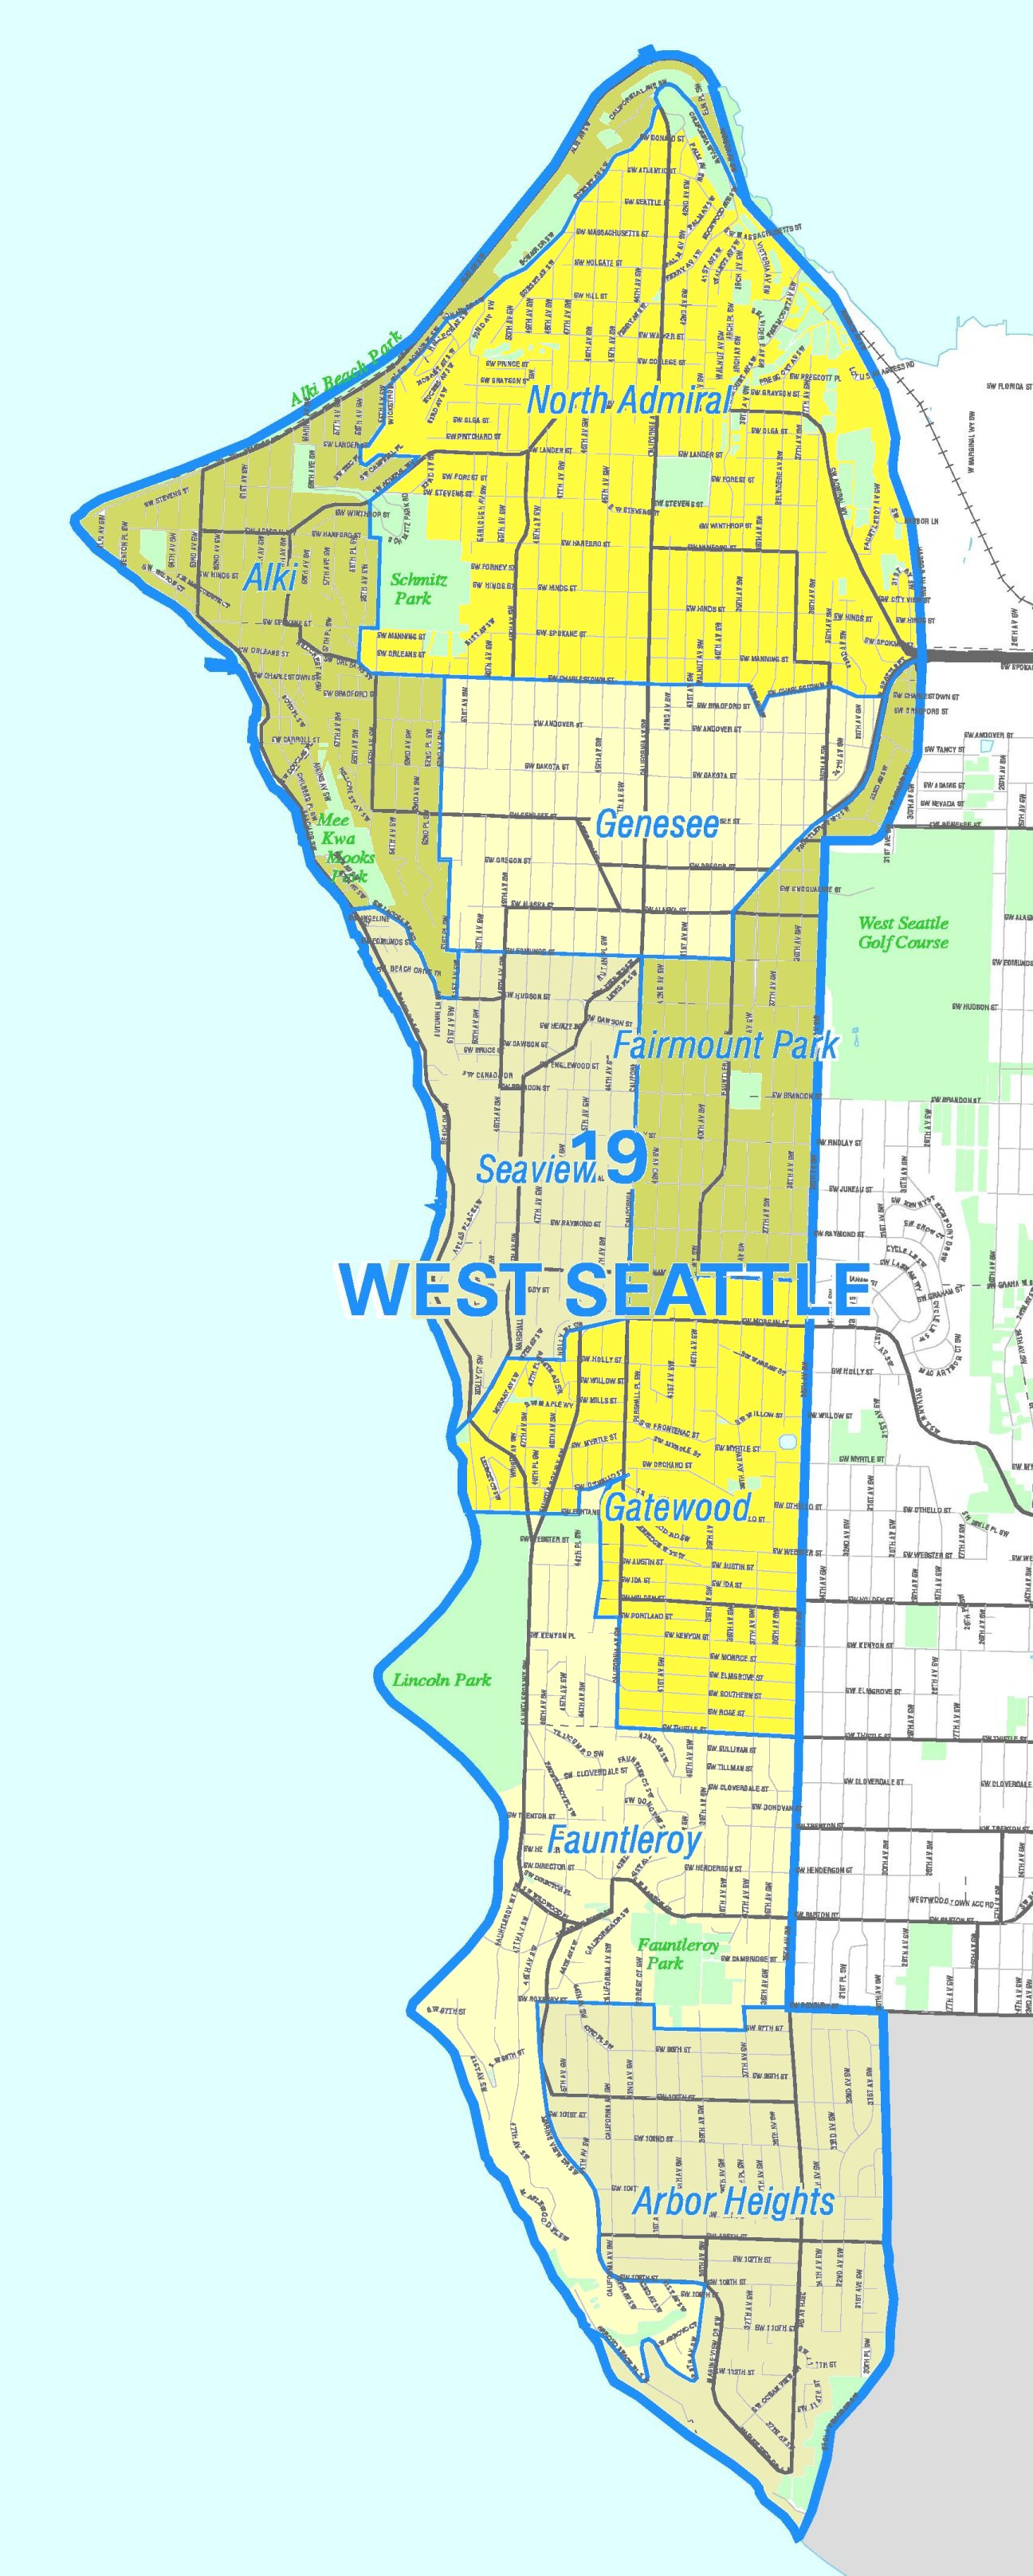 FileSeattle West Seattle mapjpg Wikimedia Commons